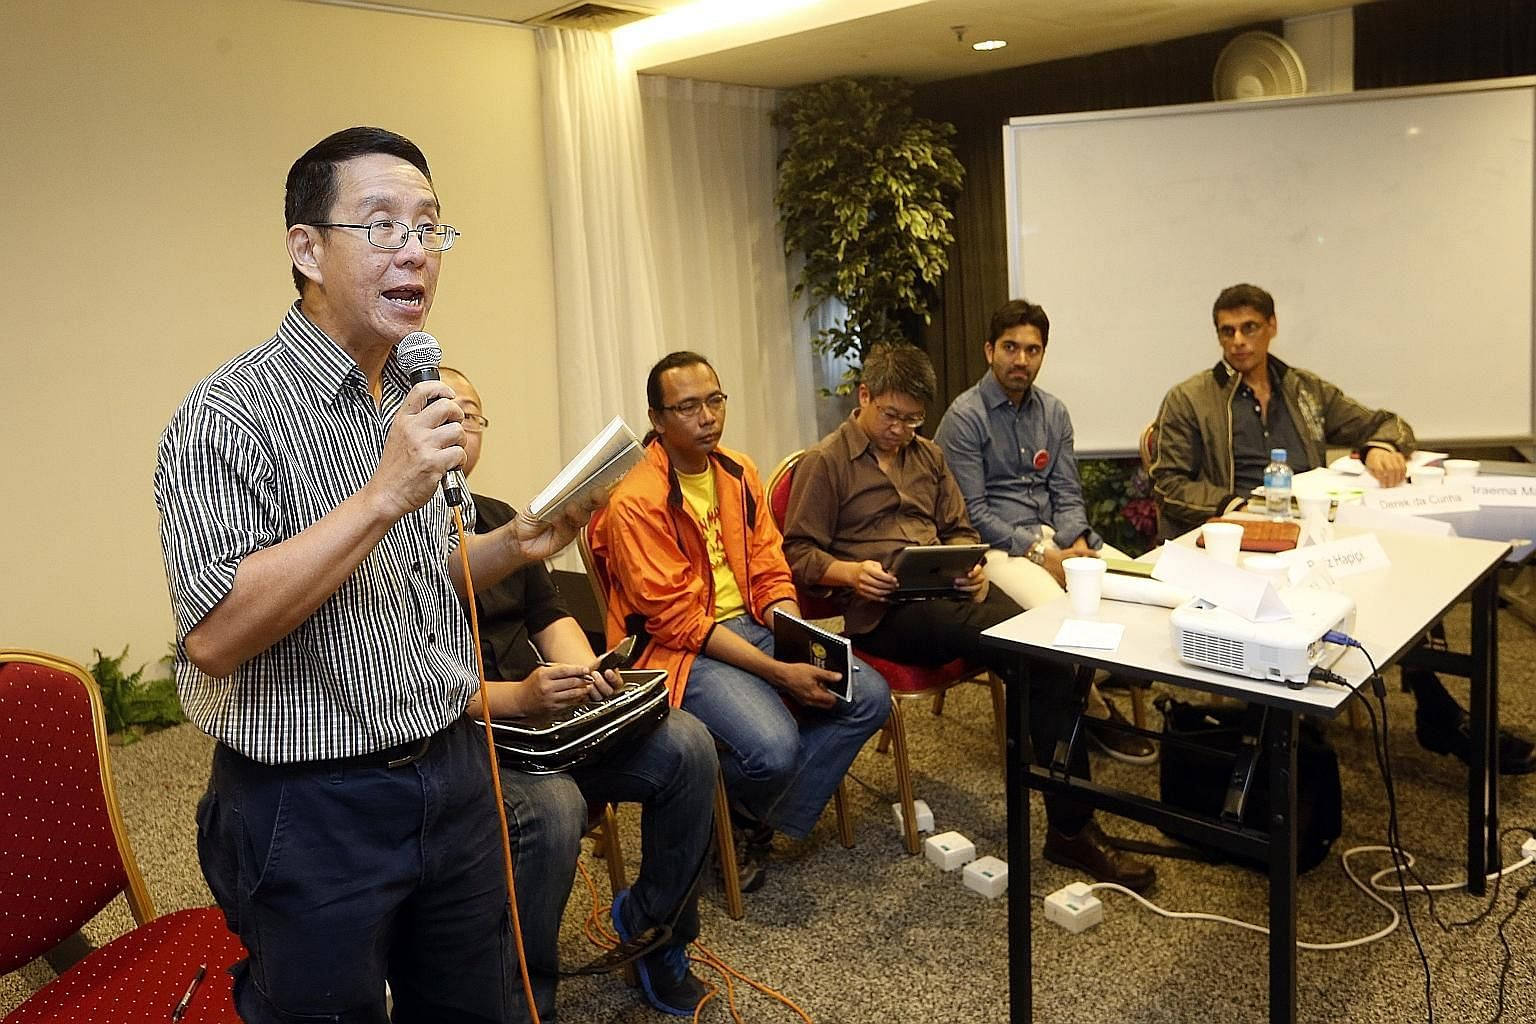 (From left) Blogger Alex Au, Mr Terry Xu of The Online Citizen, Mr Rafiz Hapipi of Maruah, Assistant Professor of Law Jack Lee of Singapore Management University, writer Sudhir Vadaketh and political analyst Derek da Cunha at yesterday's post-electio